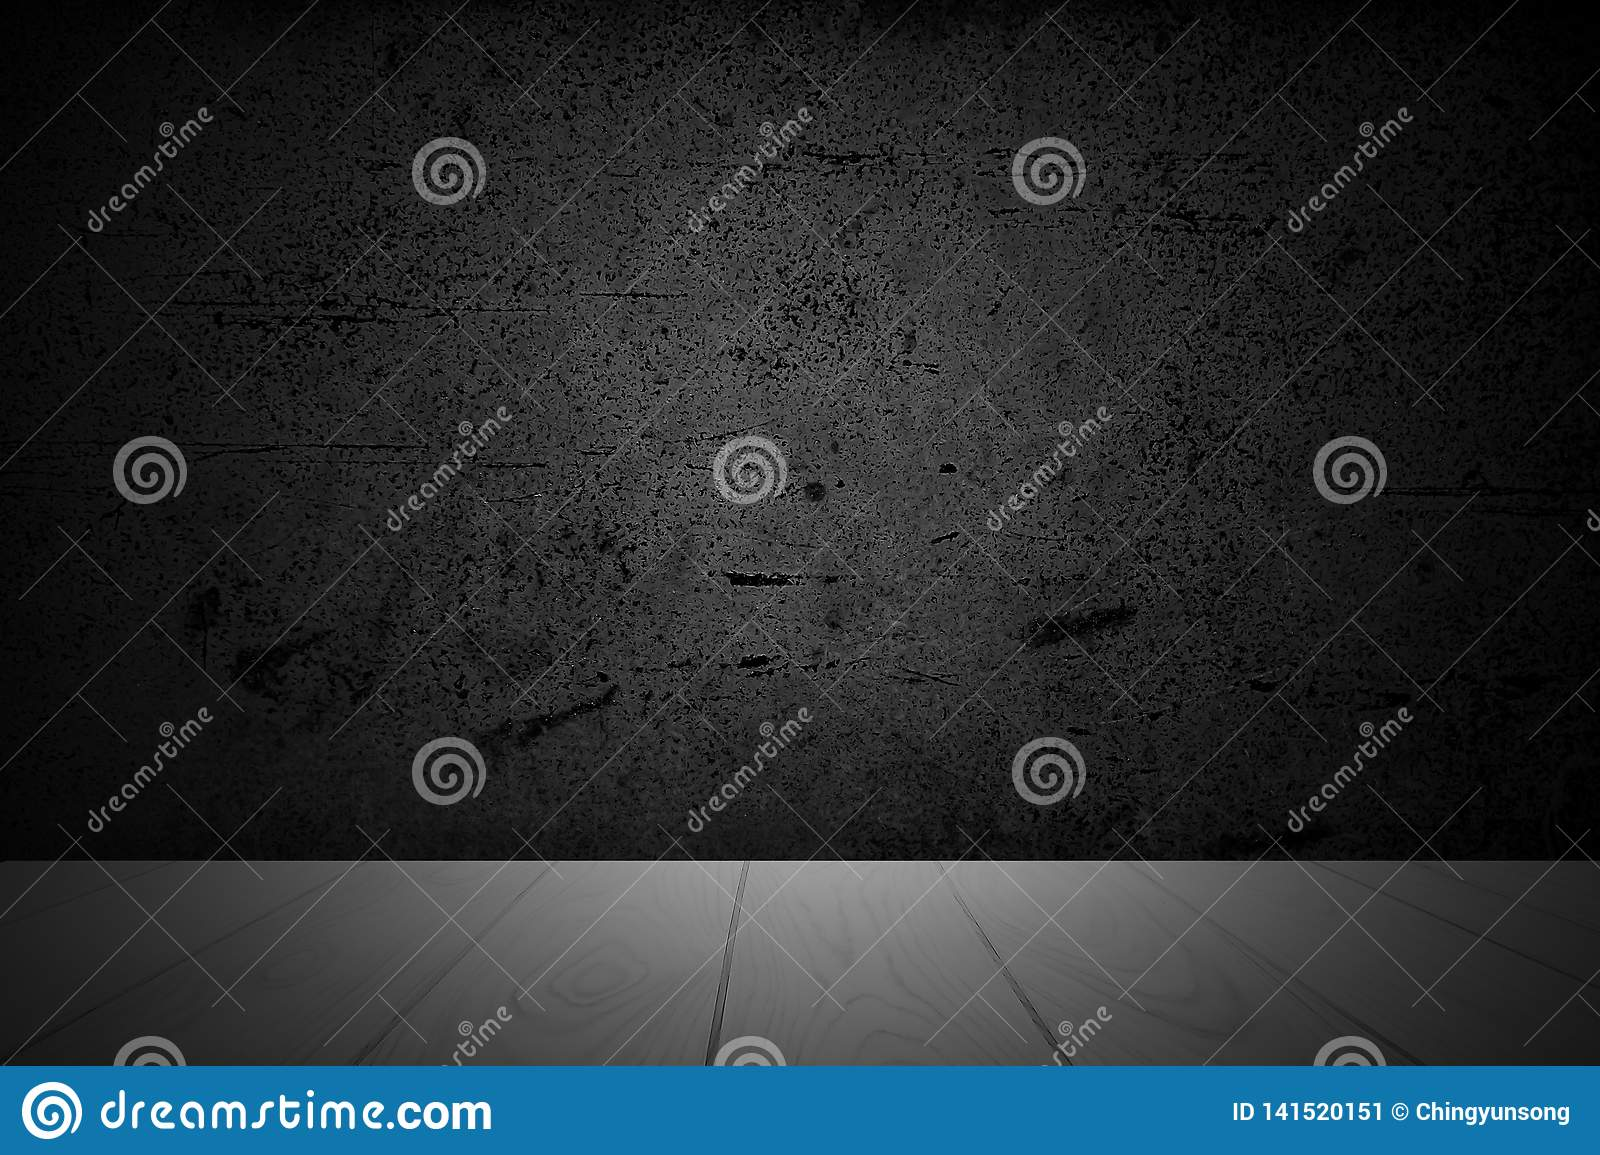 Empty wooden deck table over abstract black background with rough distressed aged texture for present product